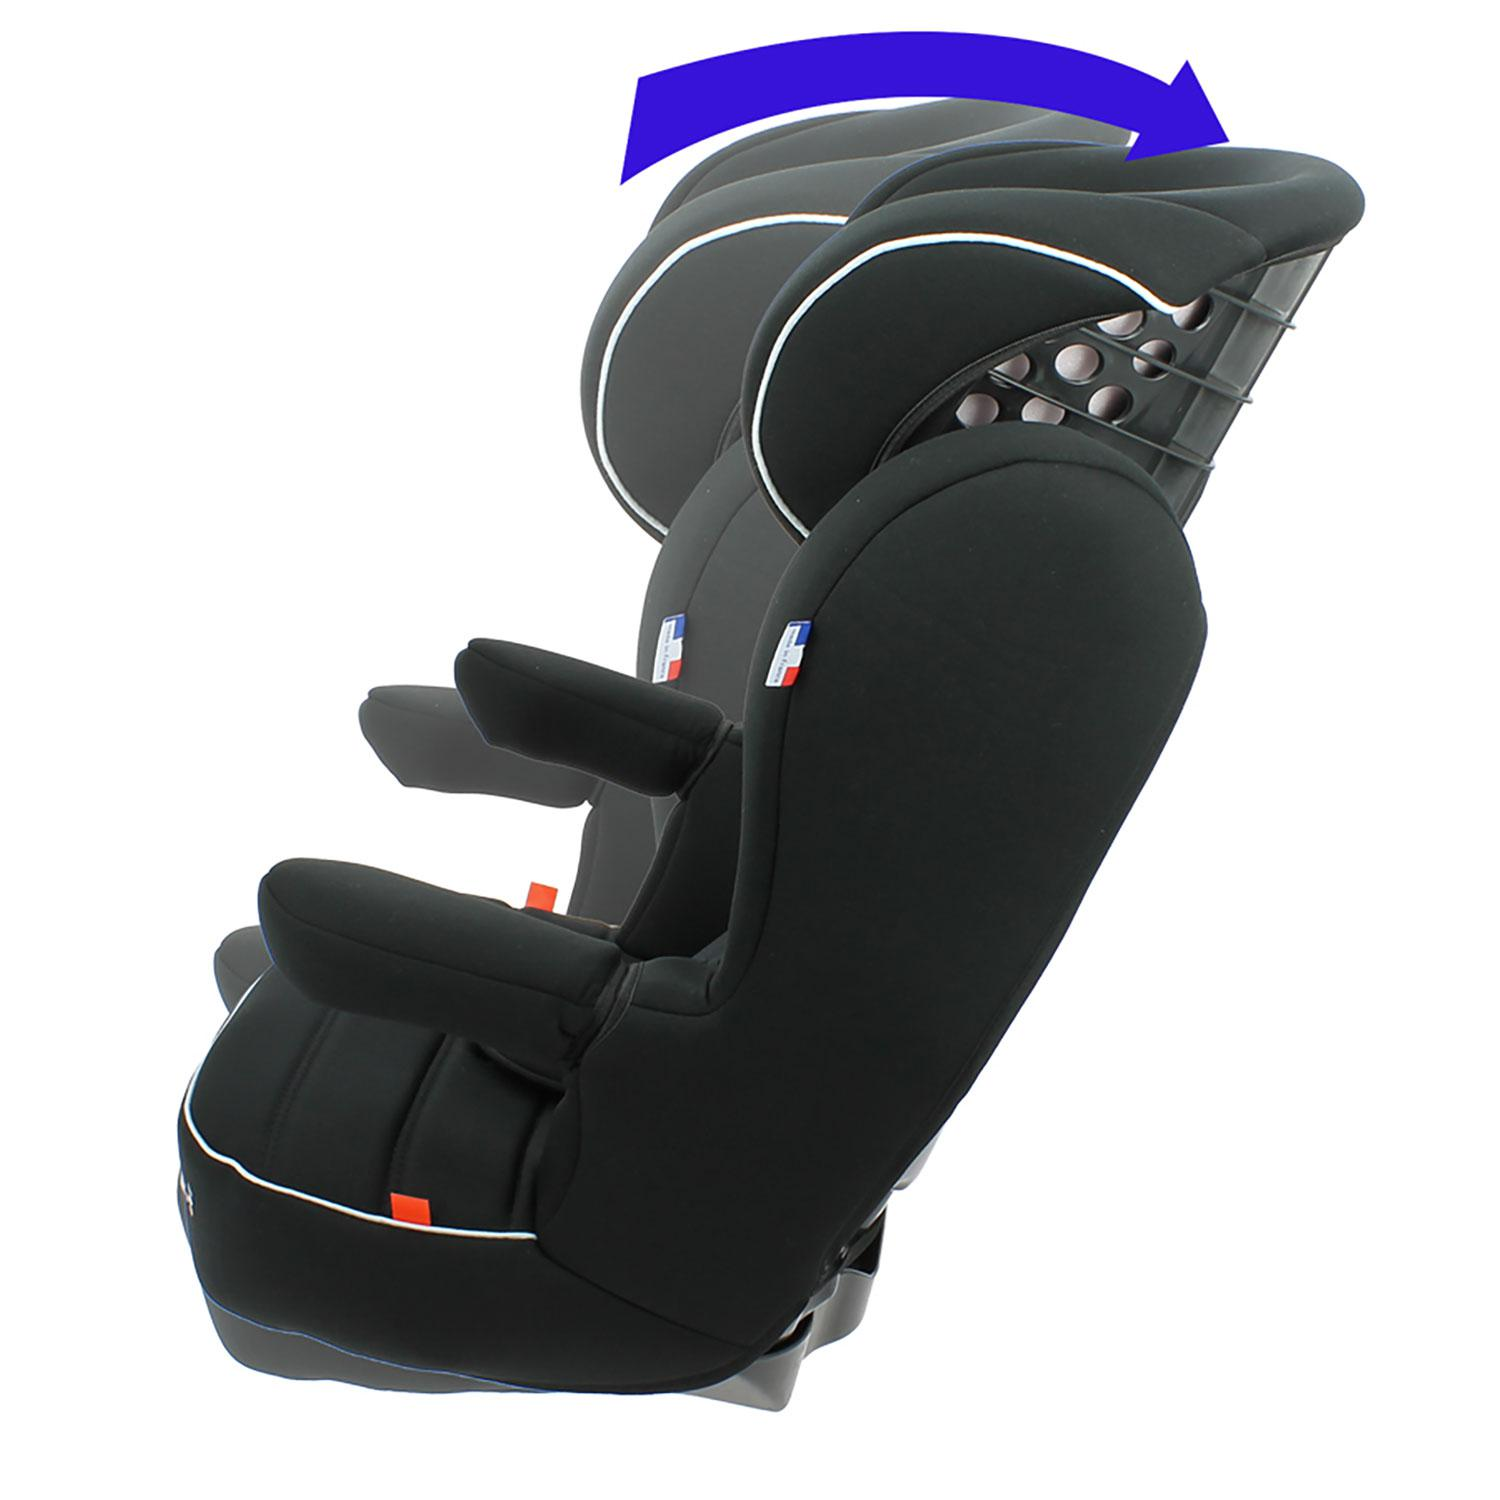 Rehausseur inclinable voiture ouistitipop - Rehausseur auto inclinable ...